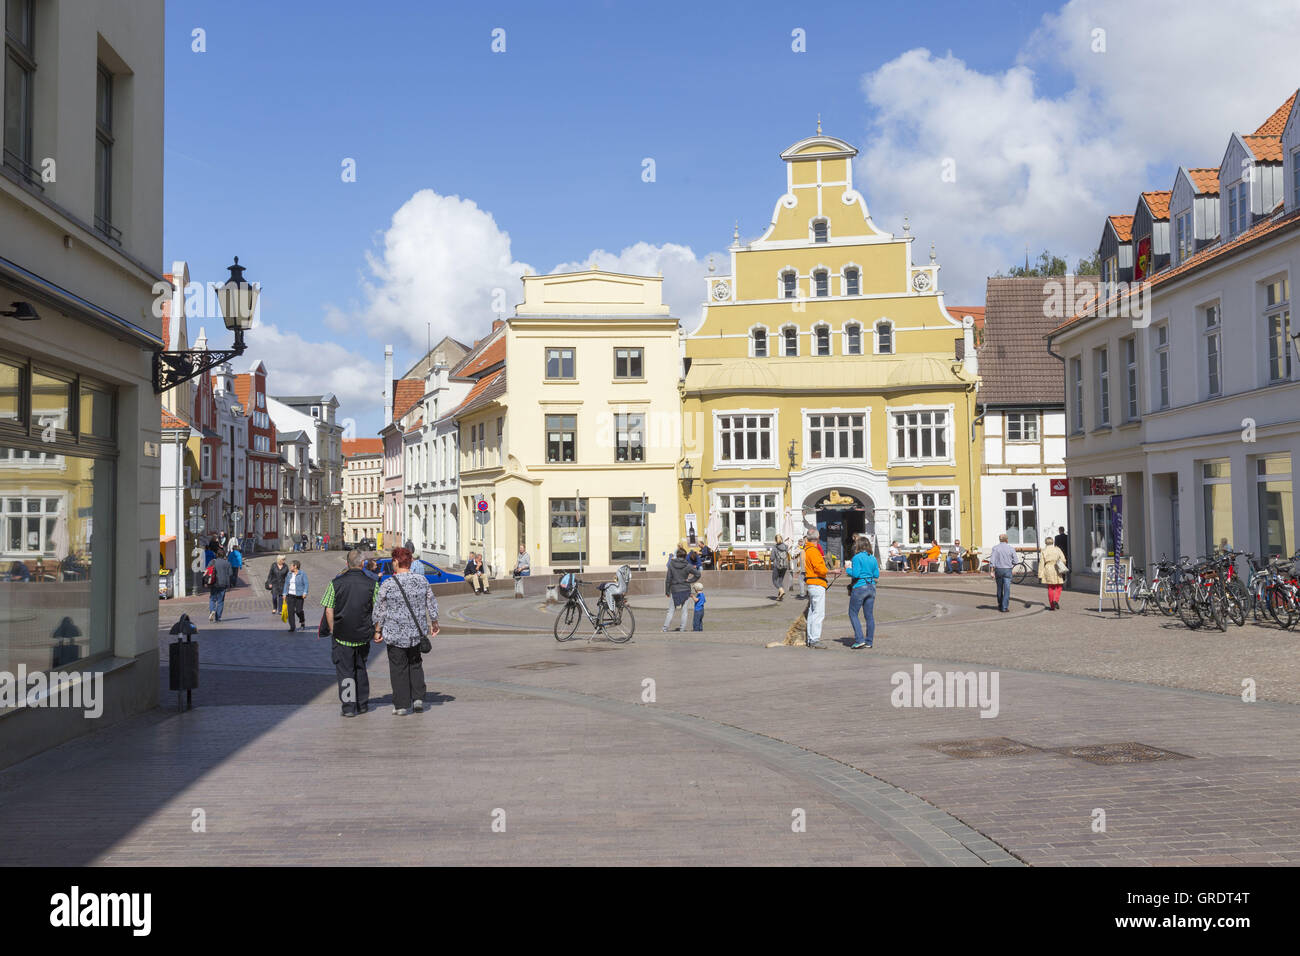 Crossroads With Plaza And Fountain In The Center Of Wismar Mecklenburg-Vorpommern - Stock Image